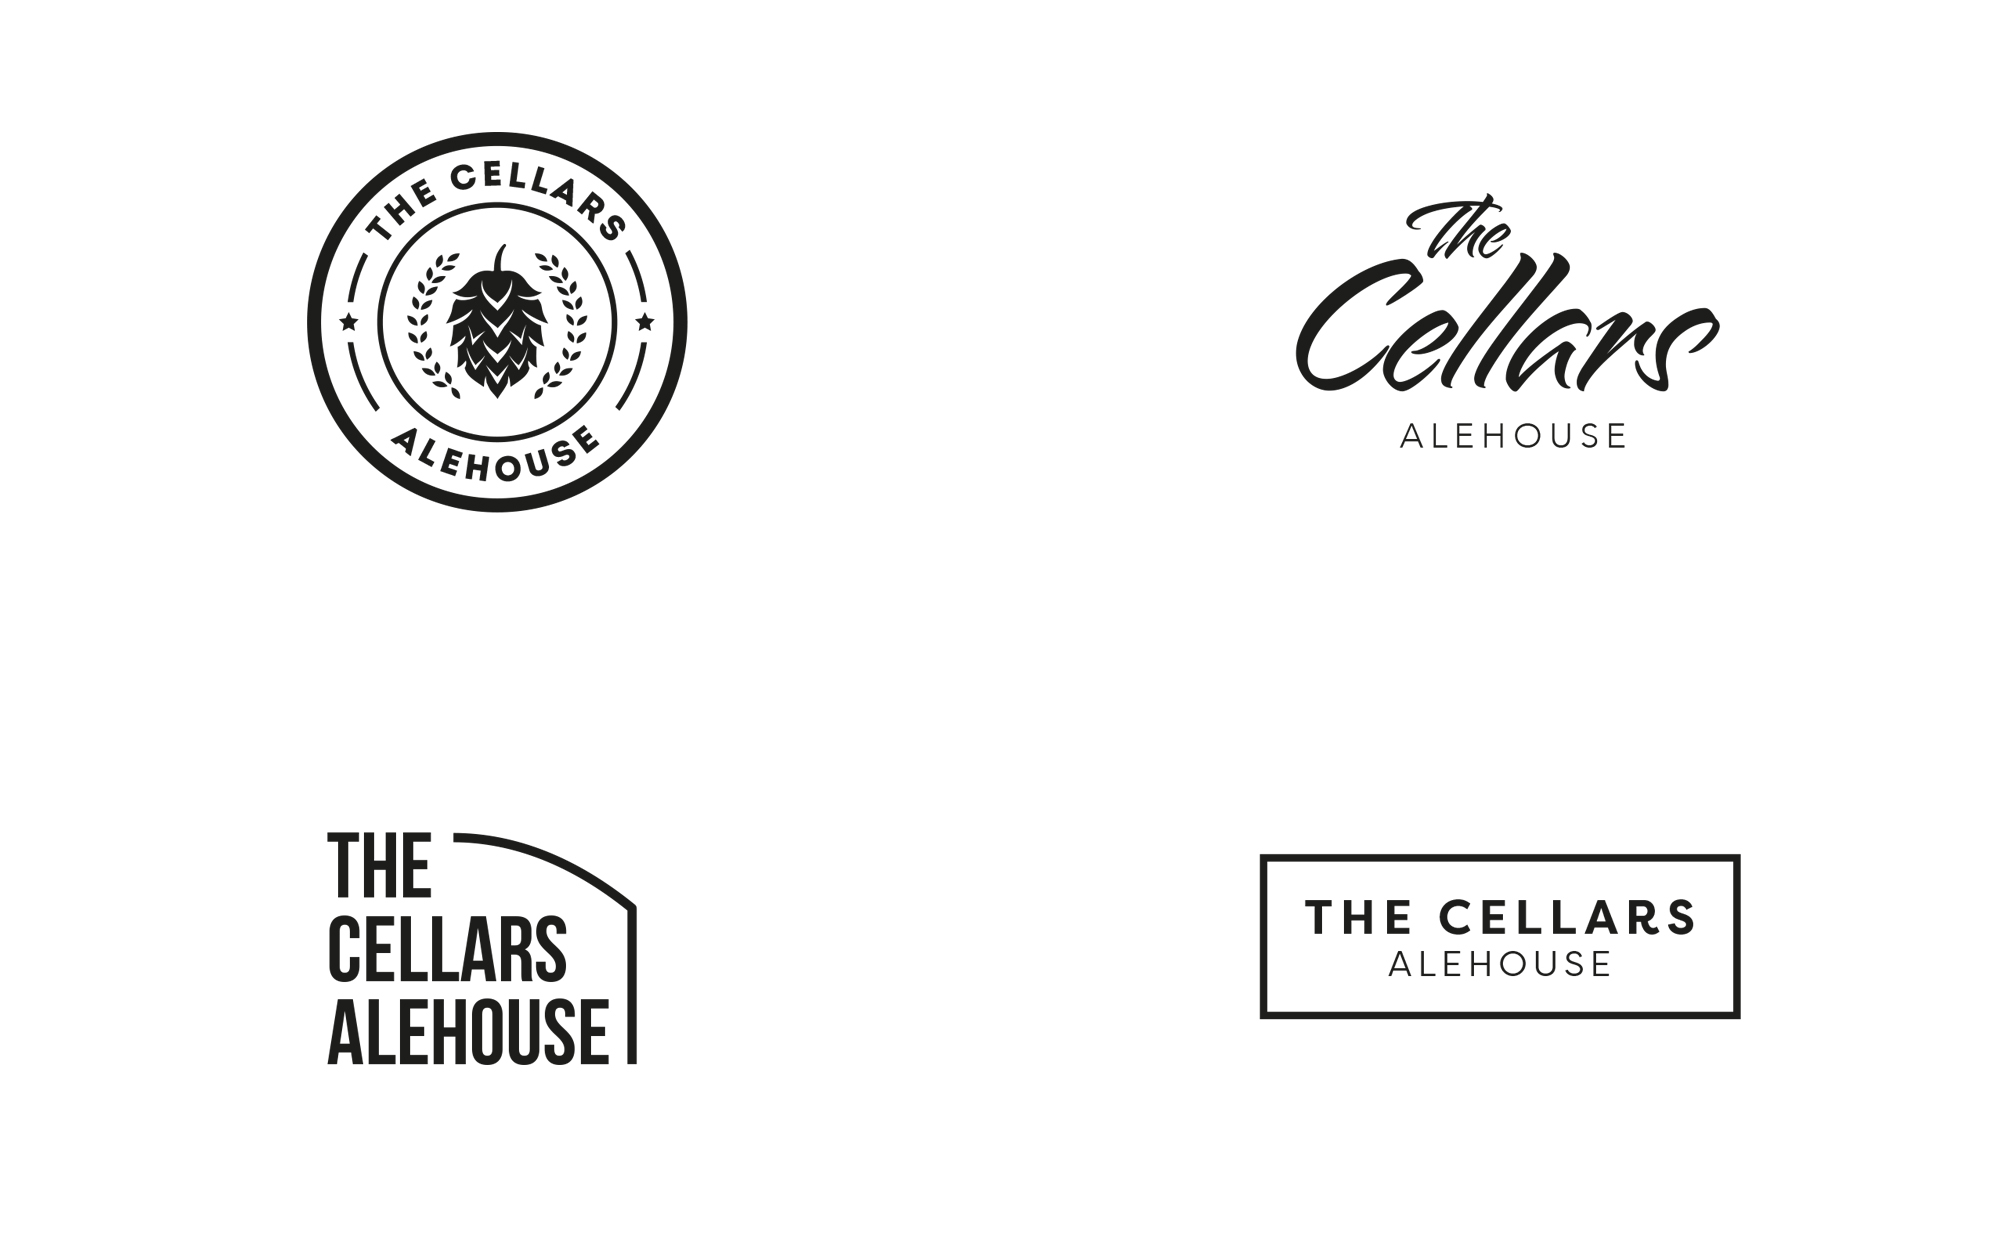 the_cellars_alehouse_branding_identity_logo_design_matthew_pomorski_graphic_designer_maidstone_kent